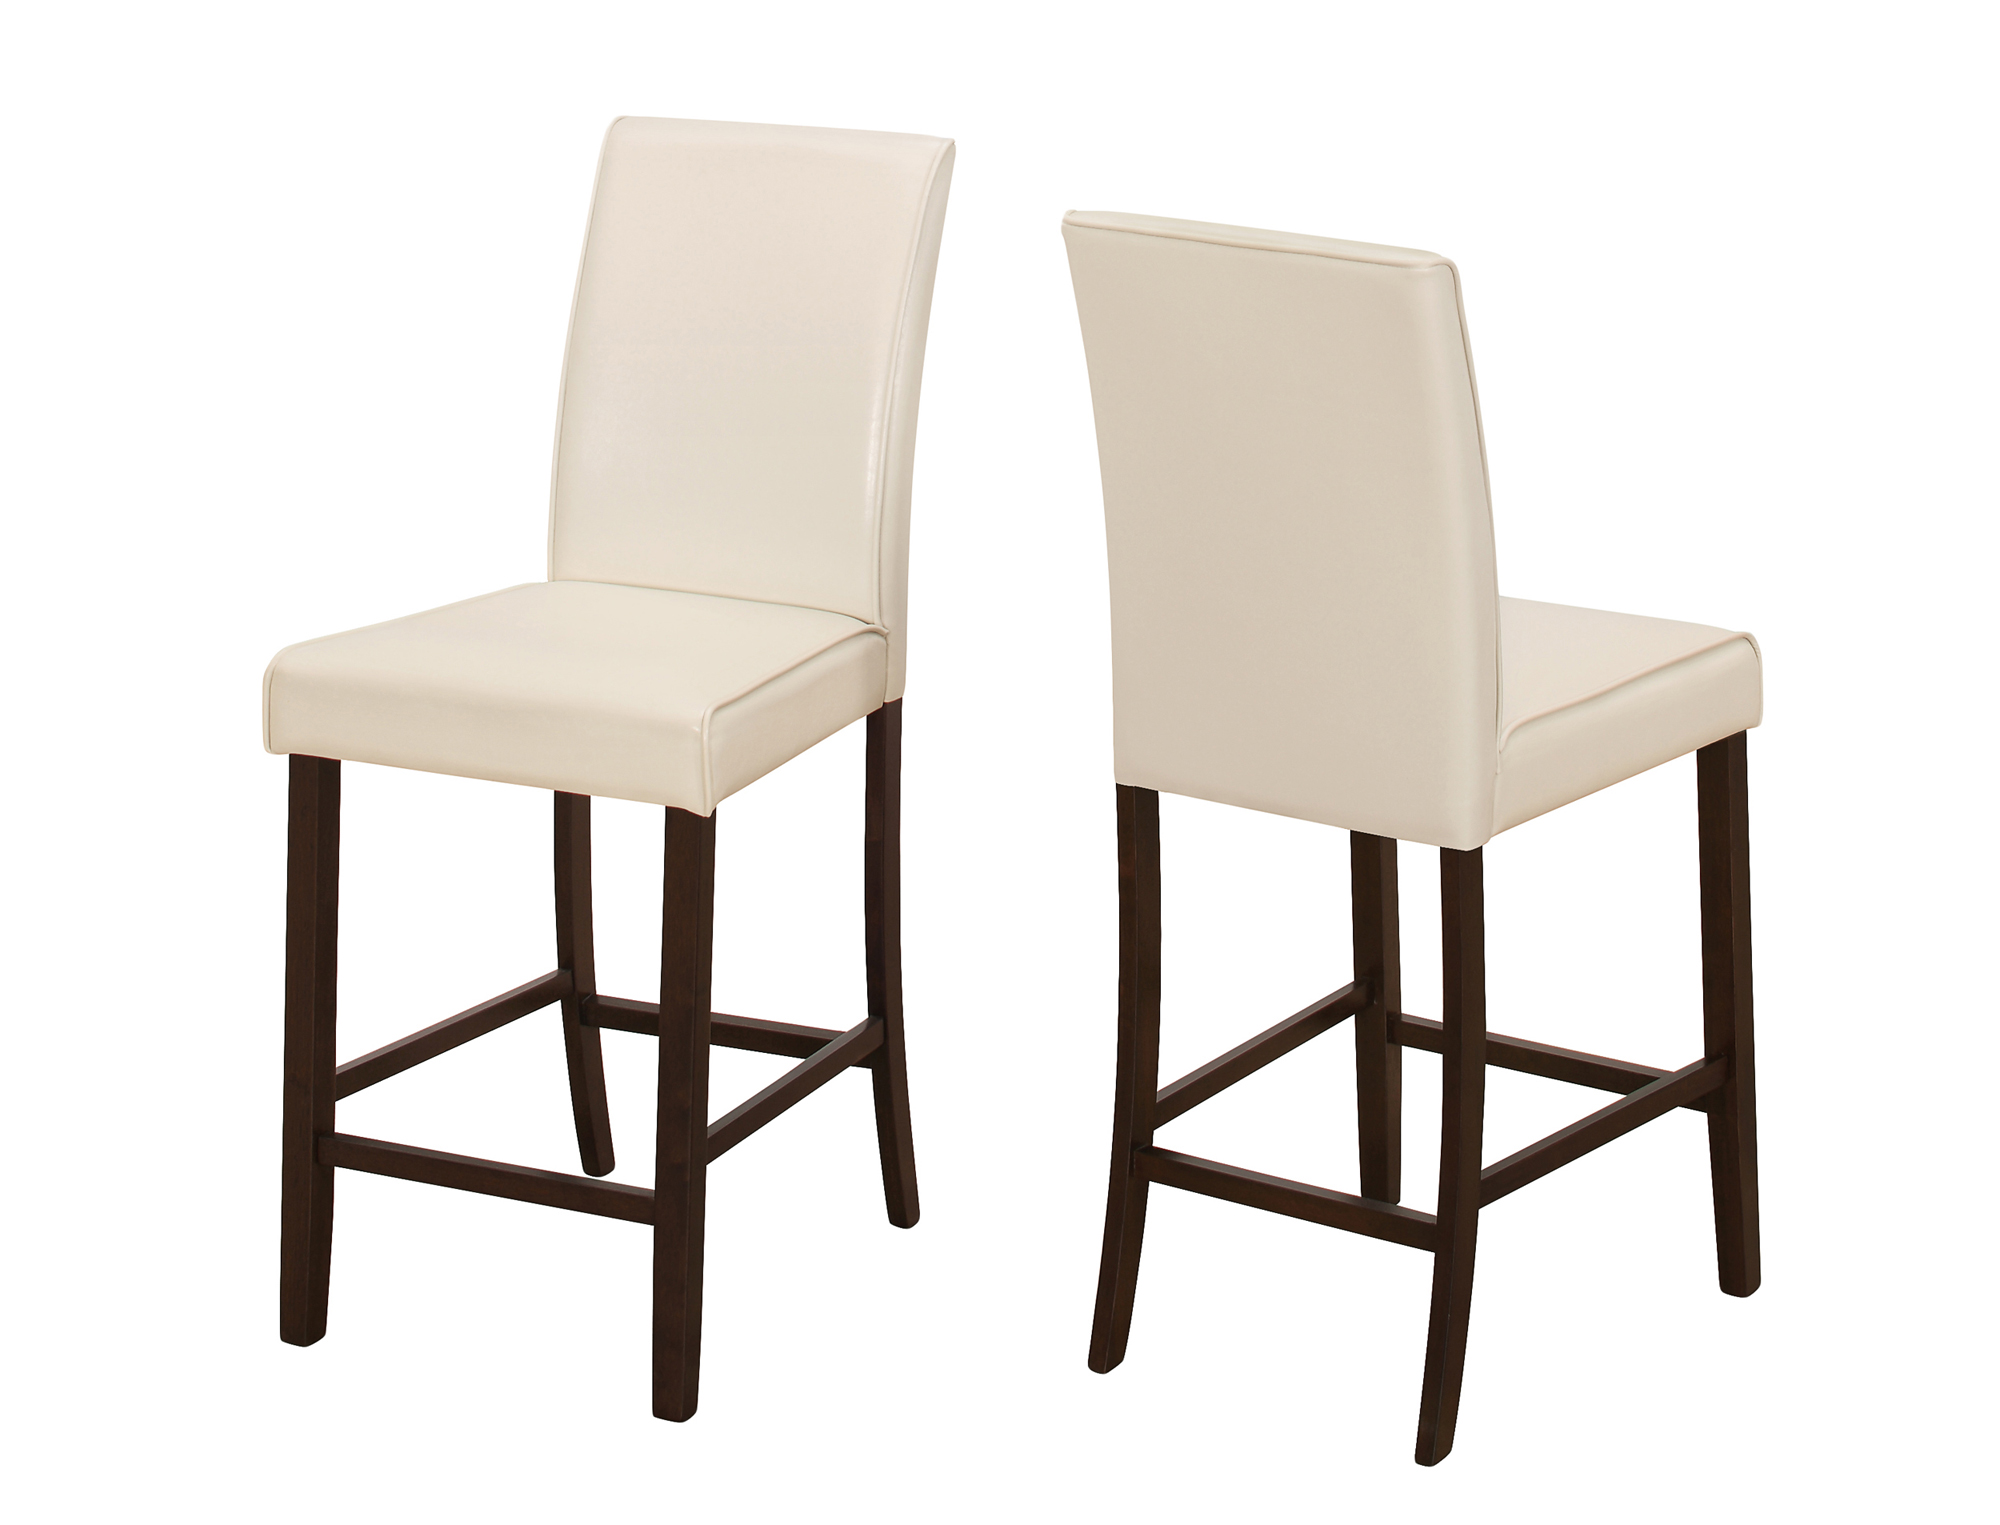 DINING CHAIR - 2PCS / IVORY LEATHER-LOOK COUNTER HEIGHT